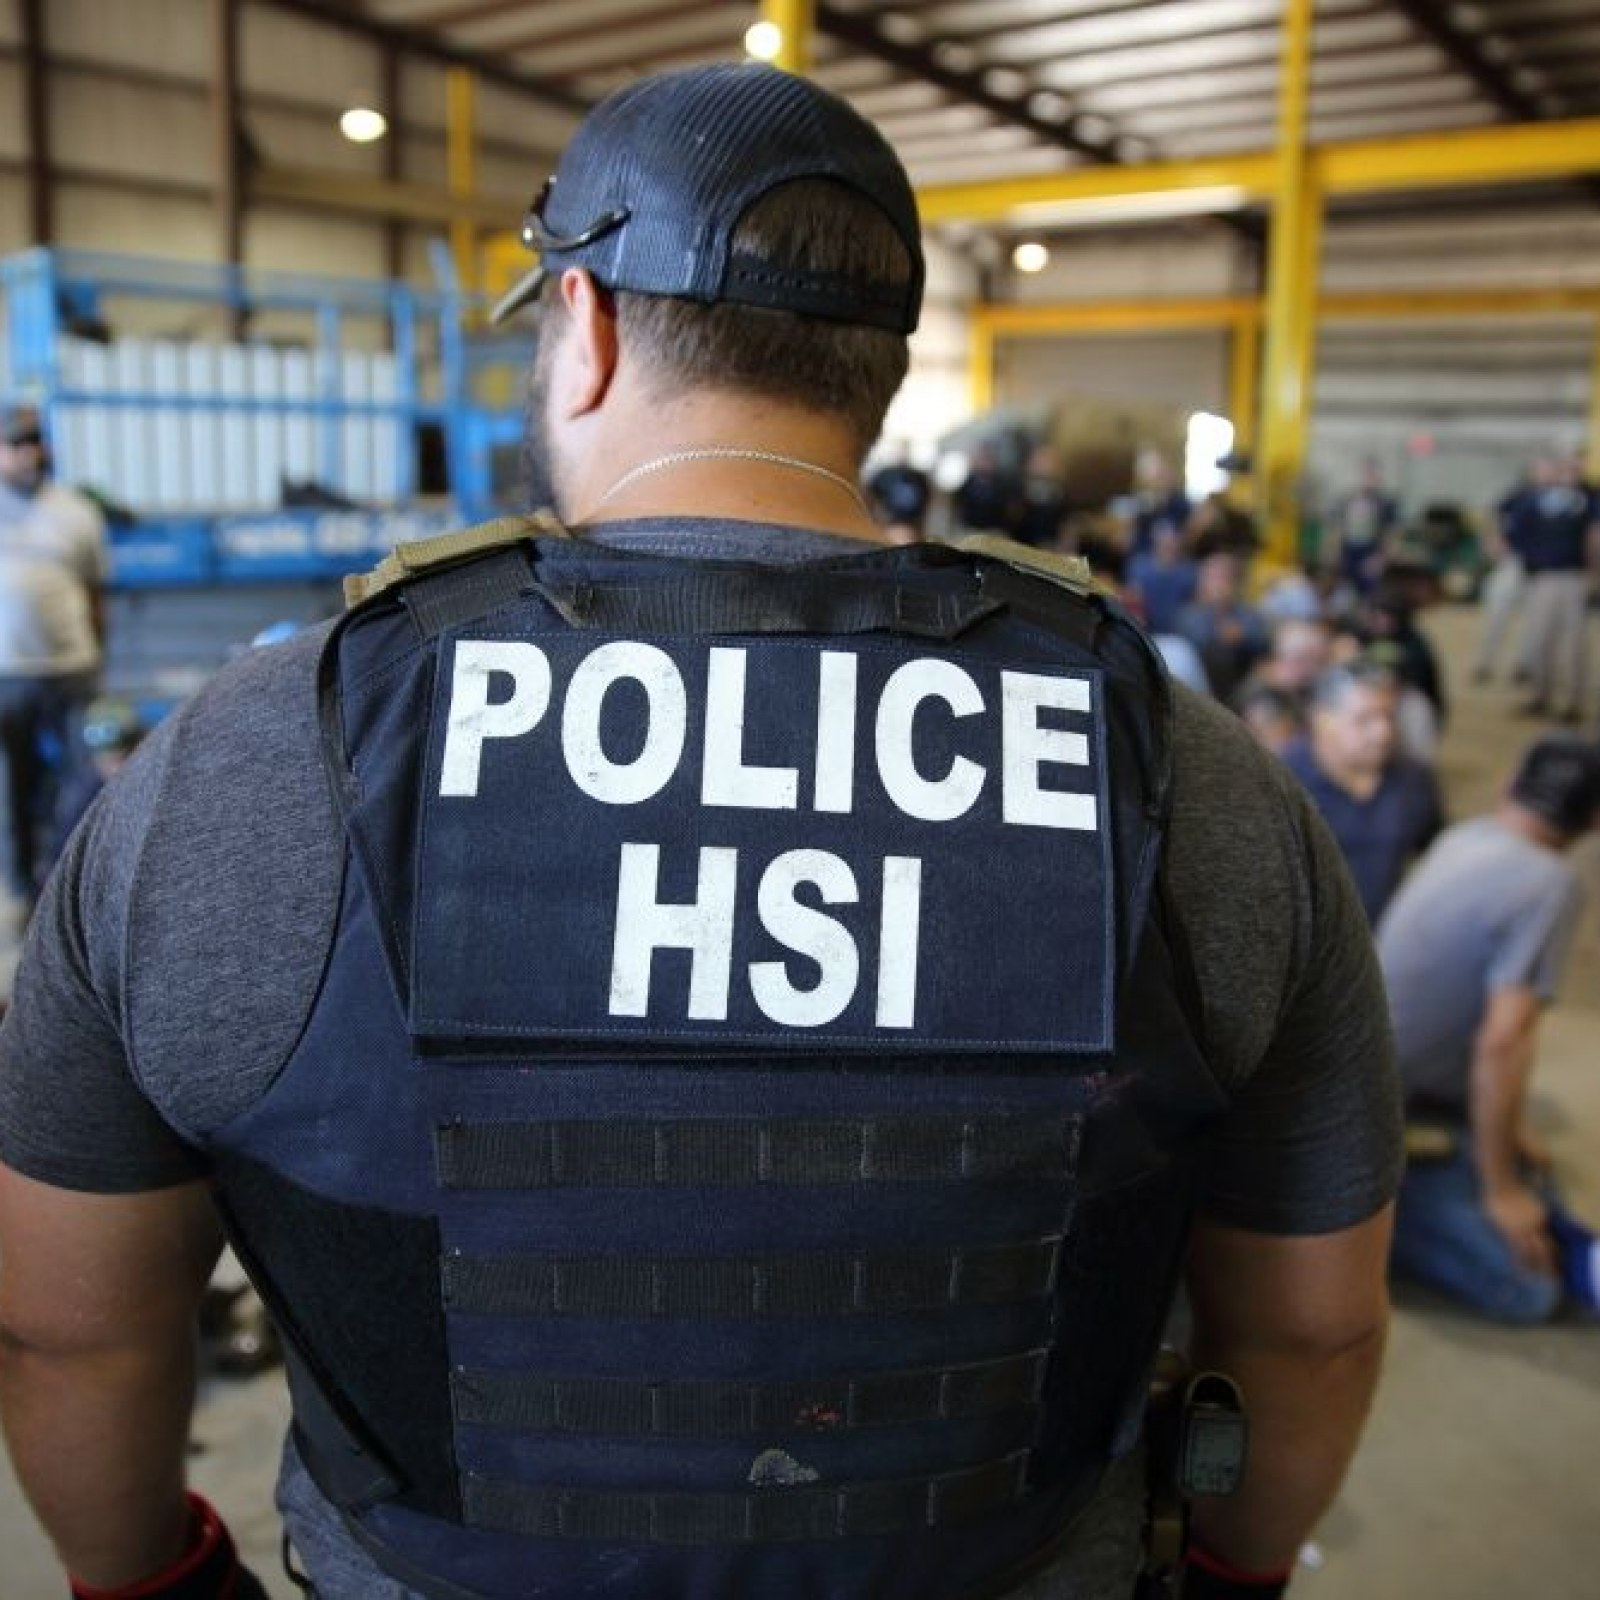 ICE Makes Mass Arrest In Family Business Raid: 'We're Watching And